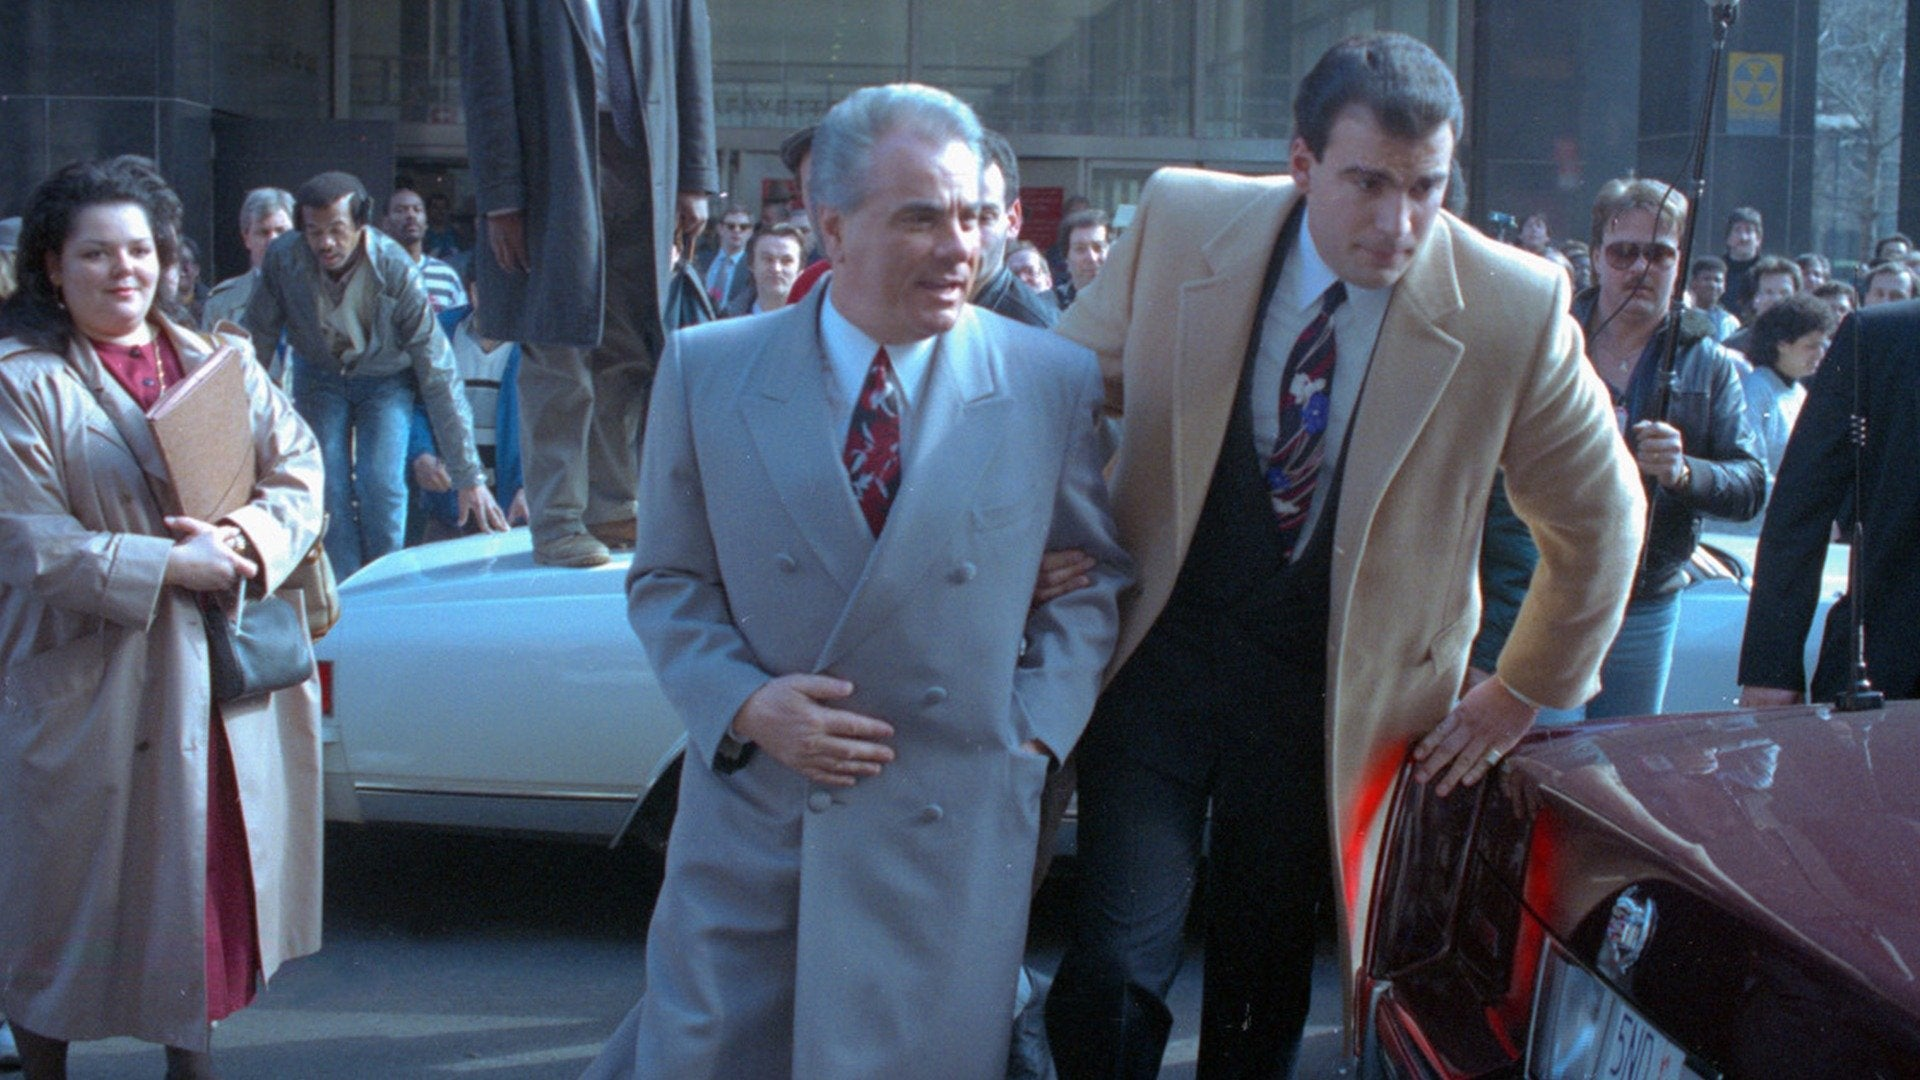 Gotti: Godfather & Son: Behind the Don